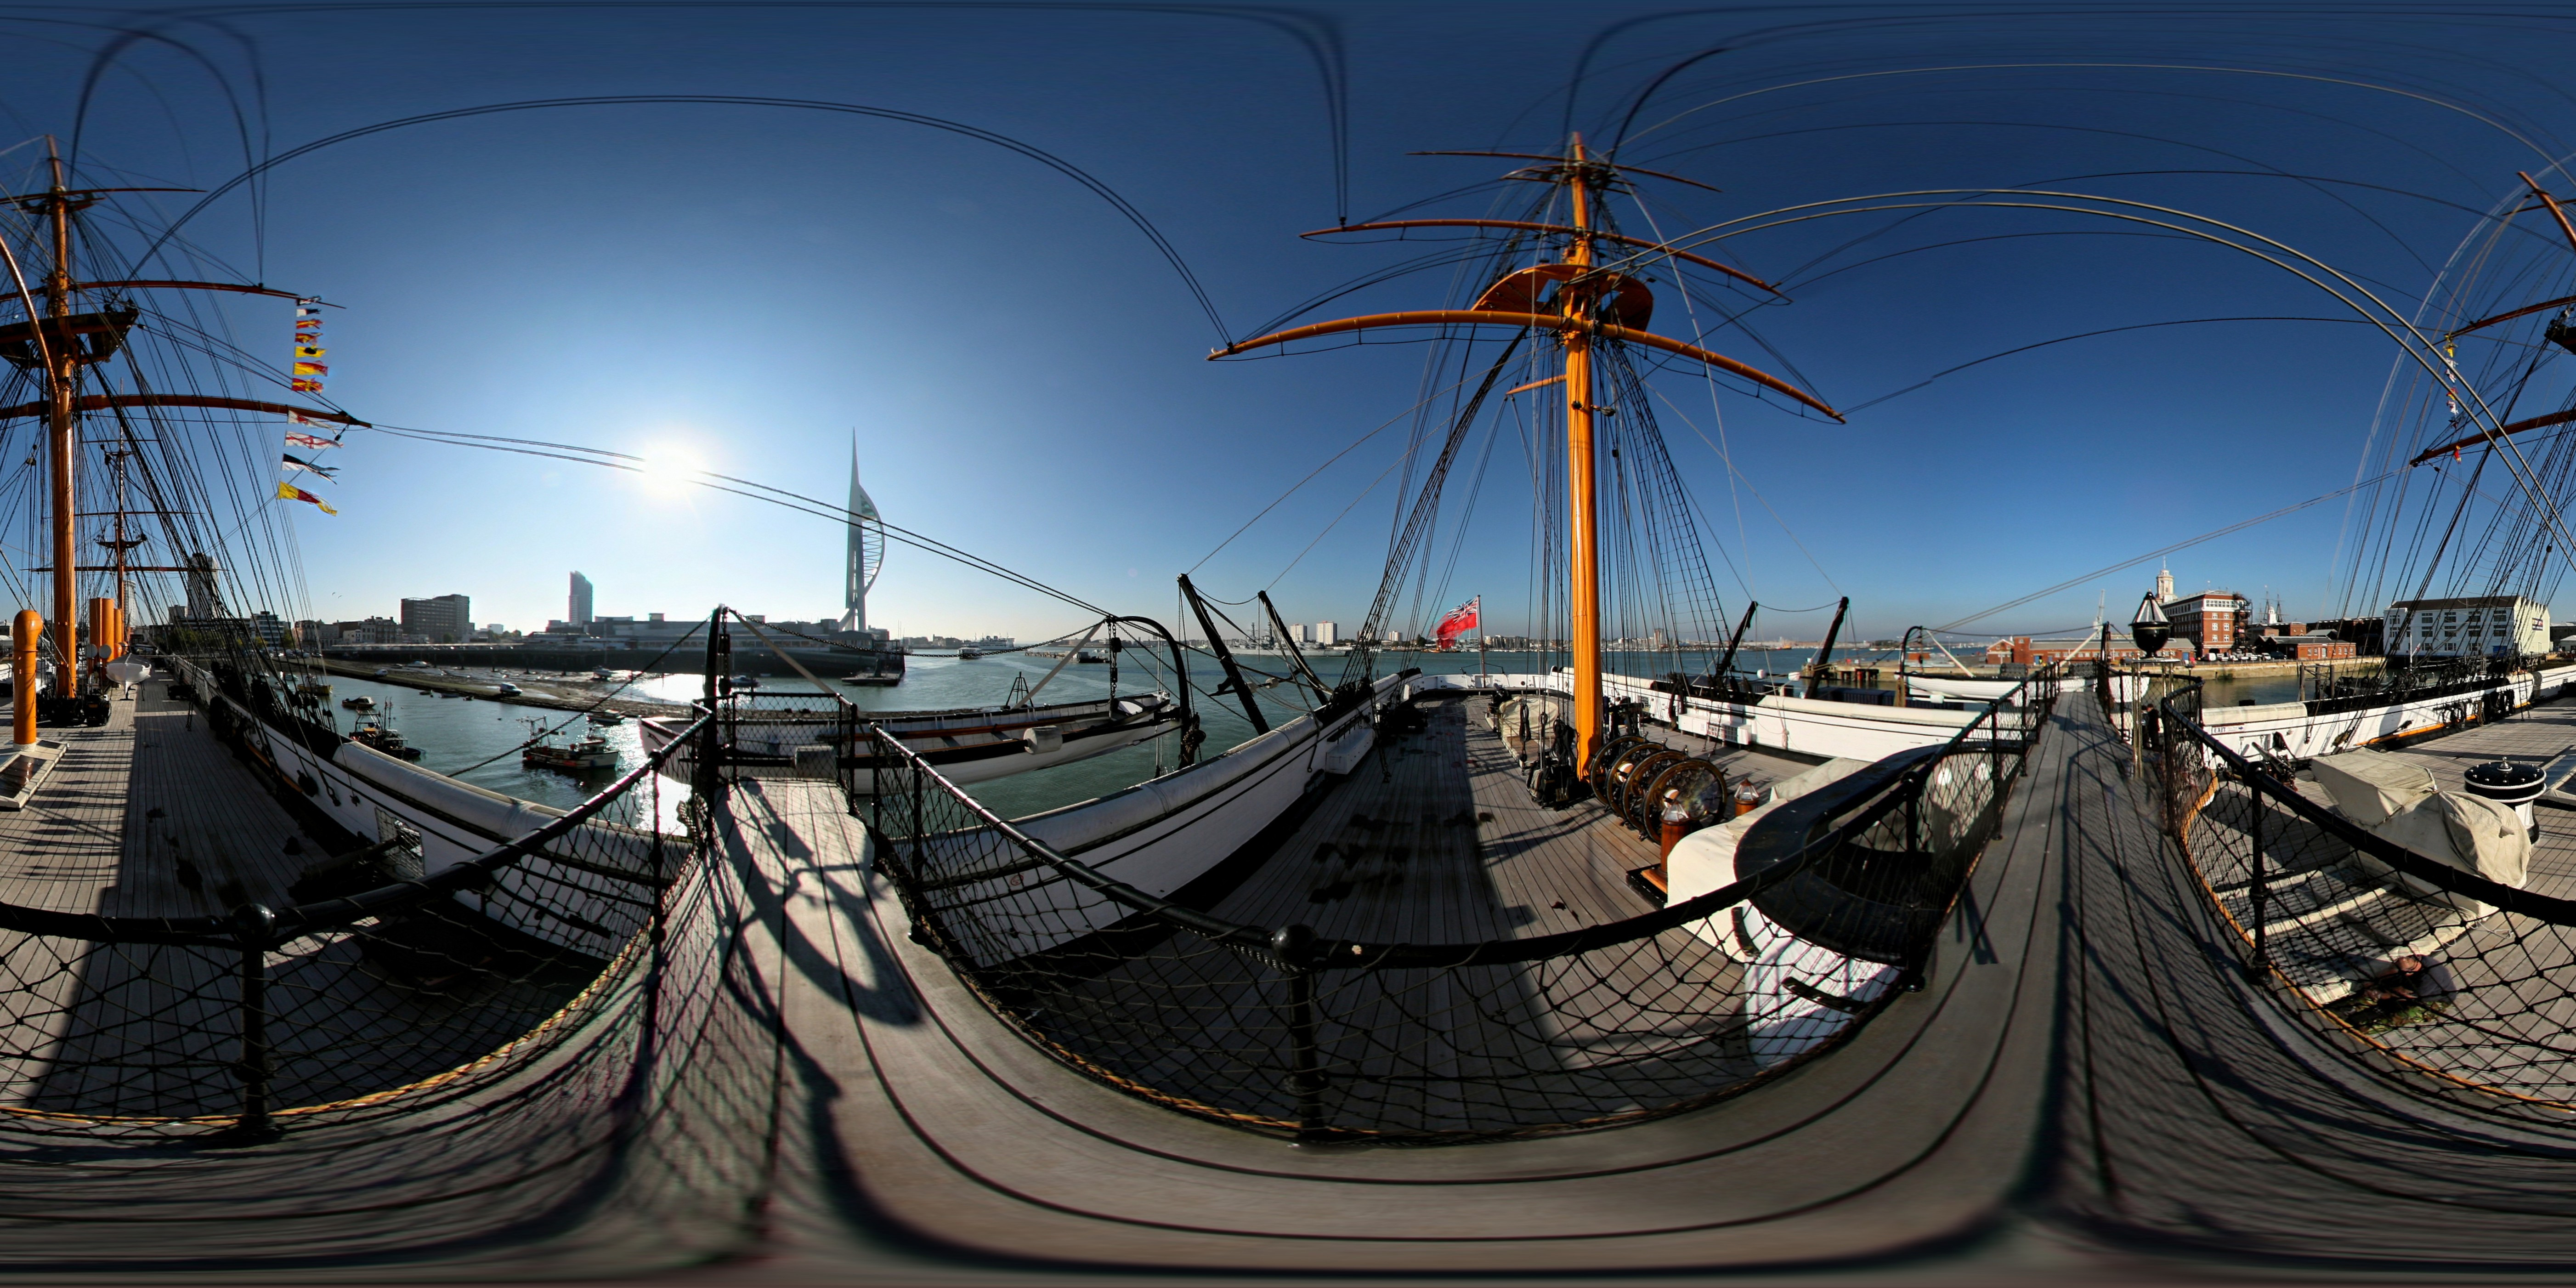 HMS Warrior - Portsmouth Docks